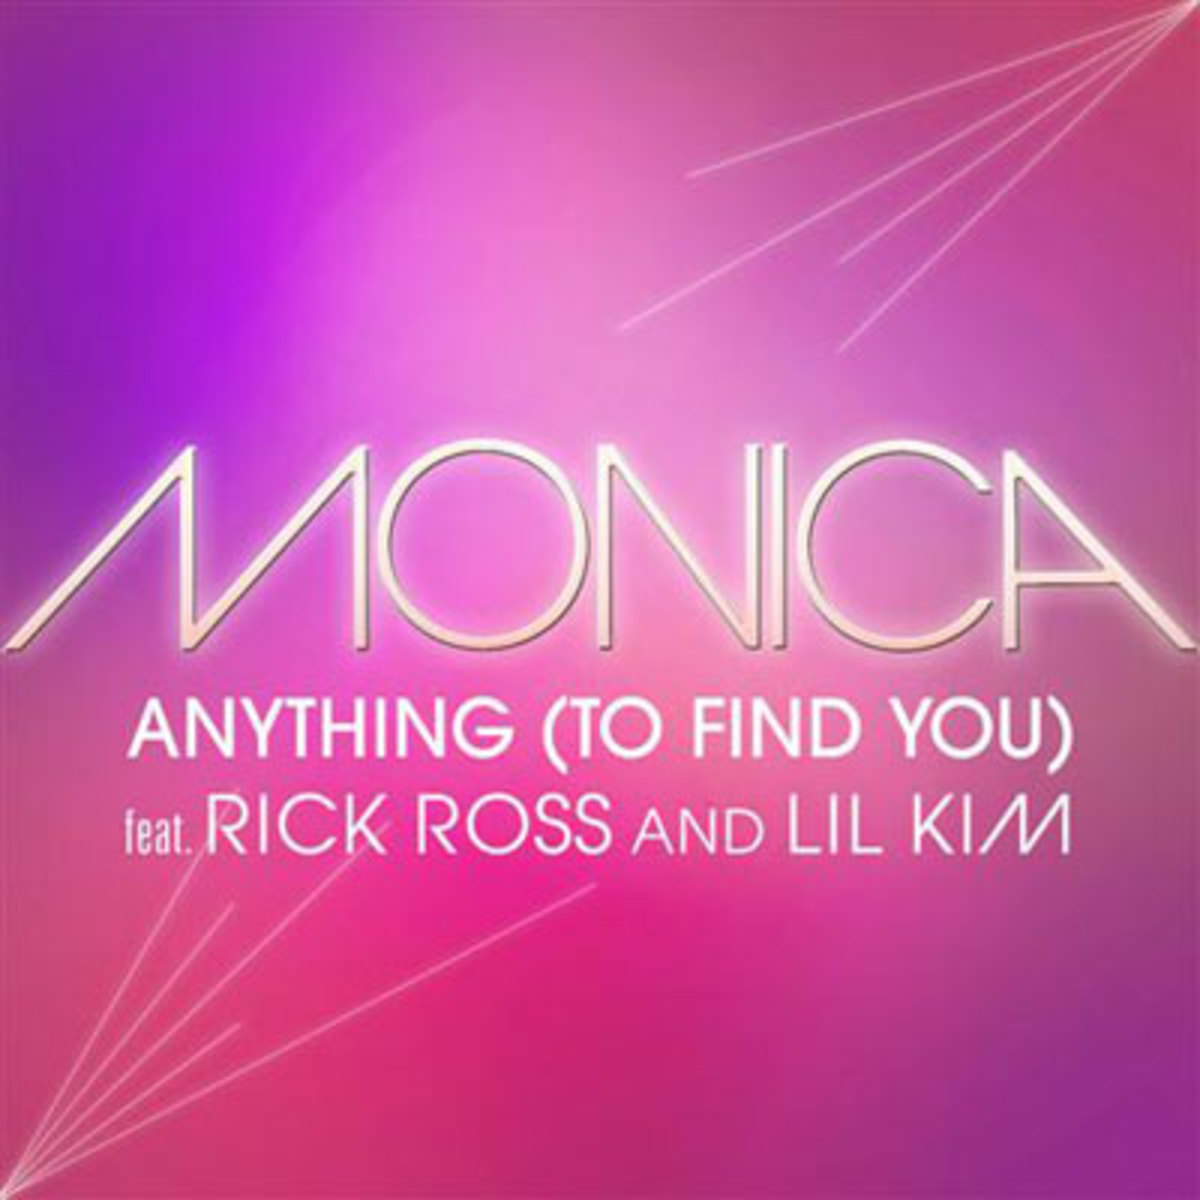 monica-anything.jpg